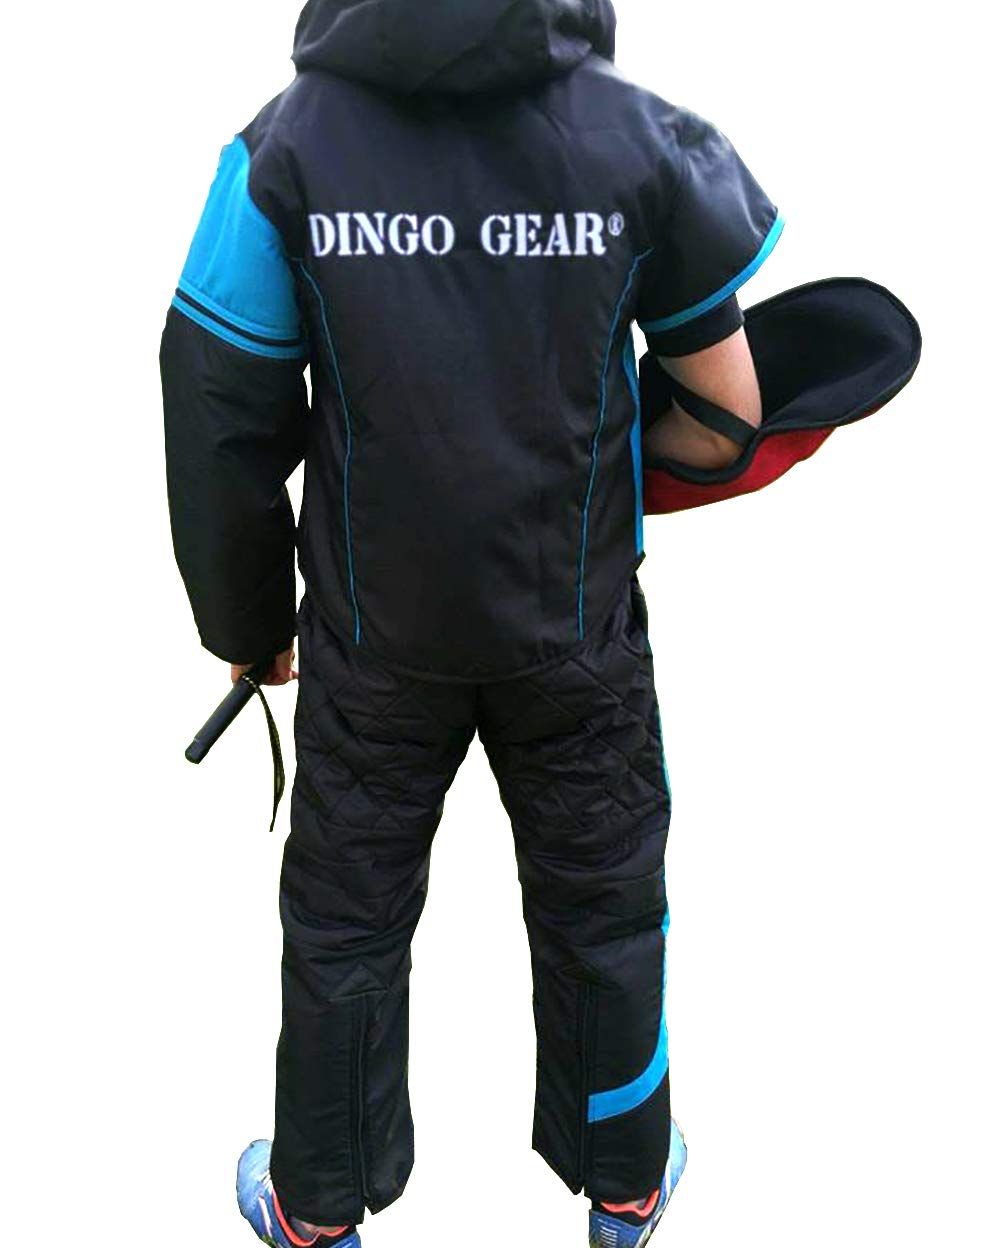 bluee inserts L bluee inserts L Dingo Gear Suit for Decoy or Handler for Training Dog Obedience, IPO and Dog Sports, Light Predection in Dog Training, Handmade, Sporty Design, Excellent Freedom of Movement S01043, L